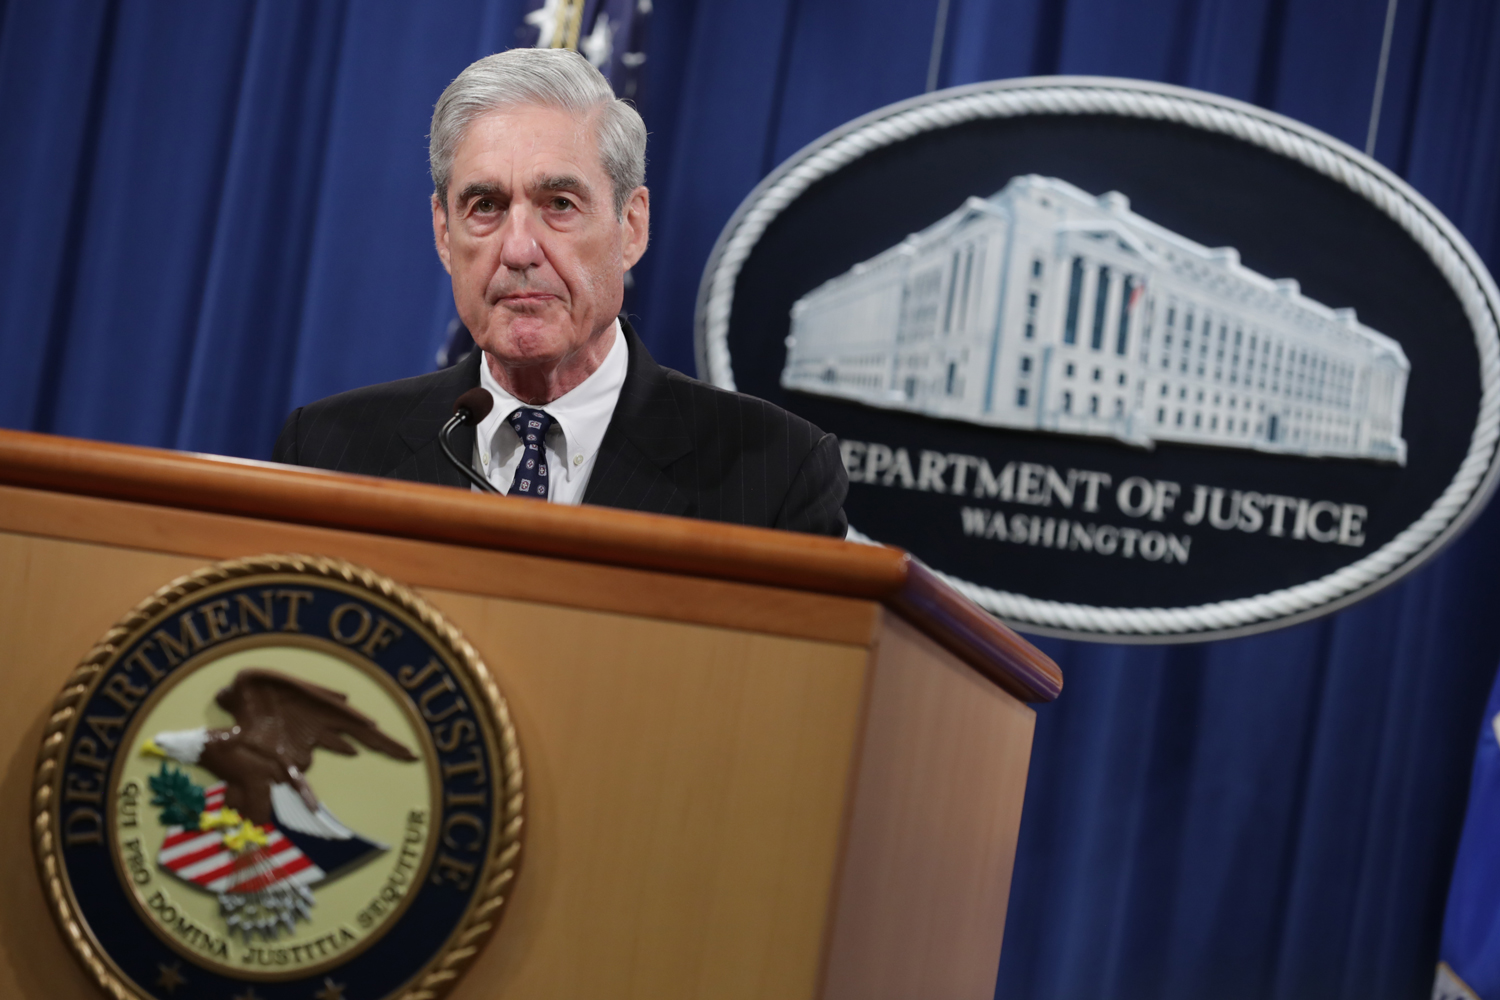 Mueller: 'If We Had Confidence That the President Did Not Commit a Crime, We Would Have Said So'